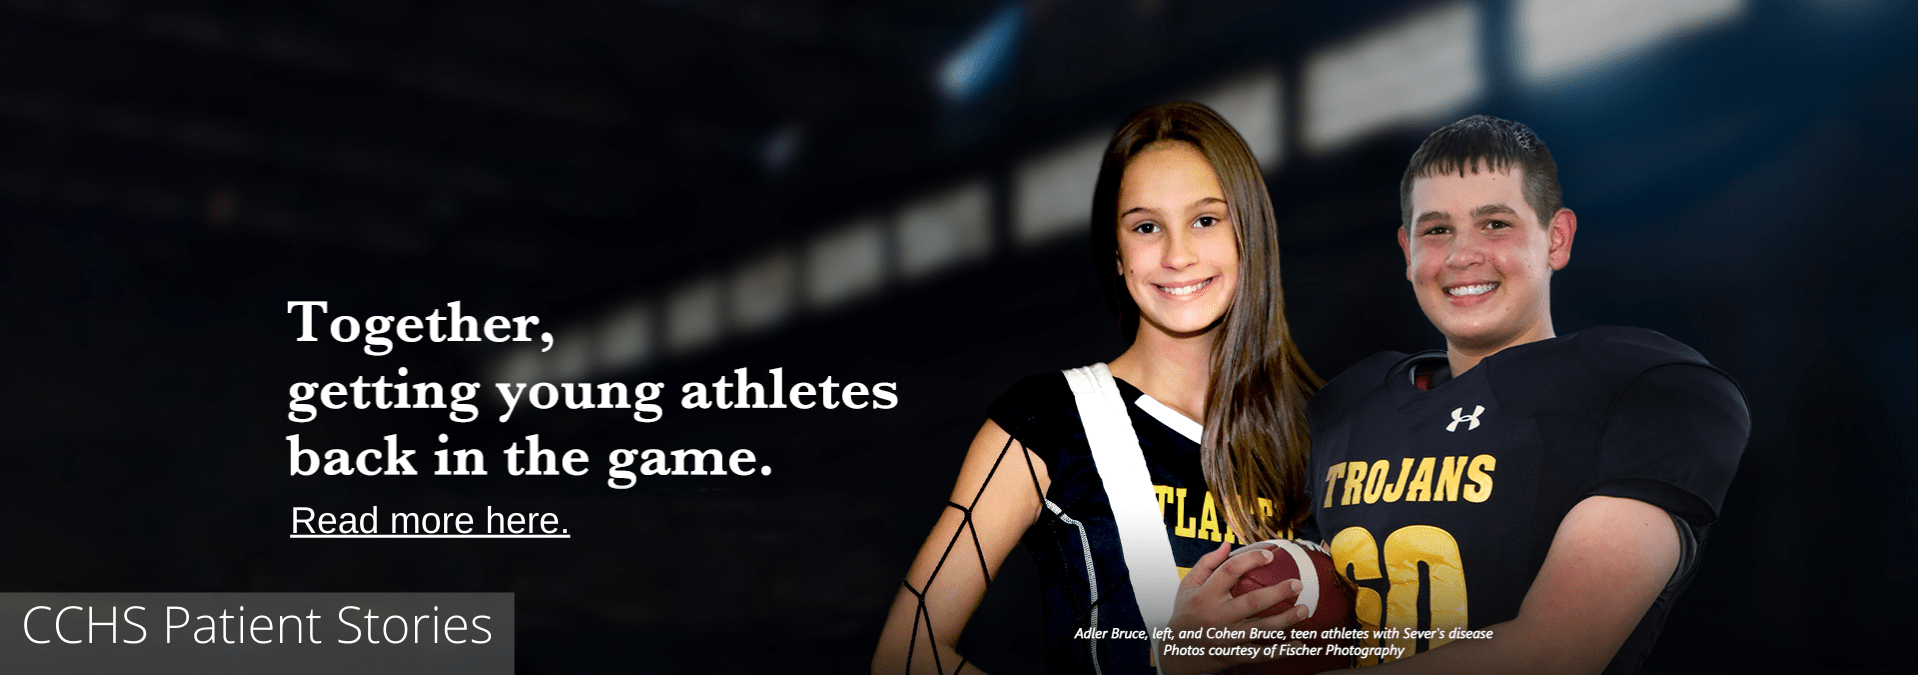 Patient story - The Bruce kids photo of two high school athletes